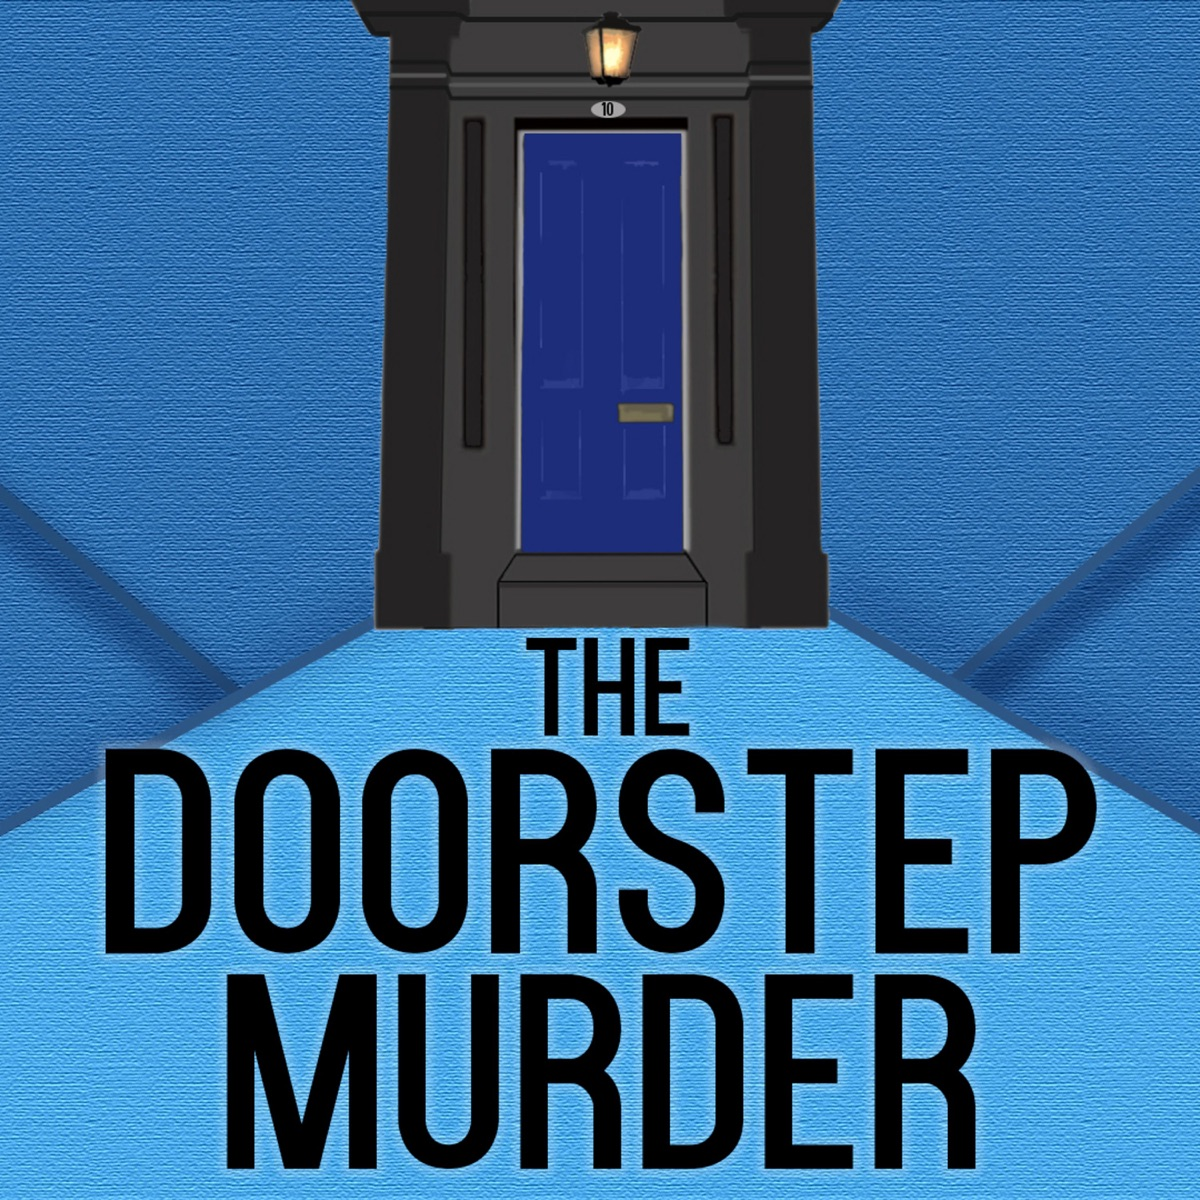 The Doorstep Murder